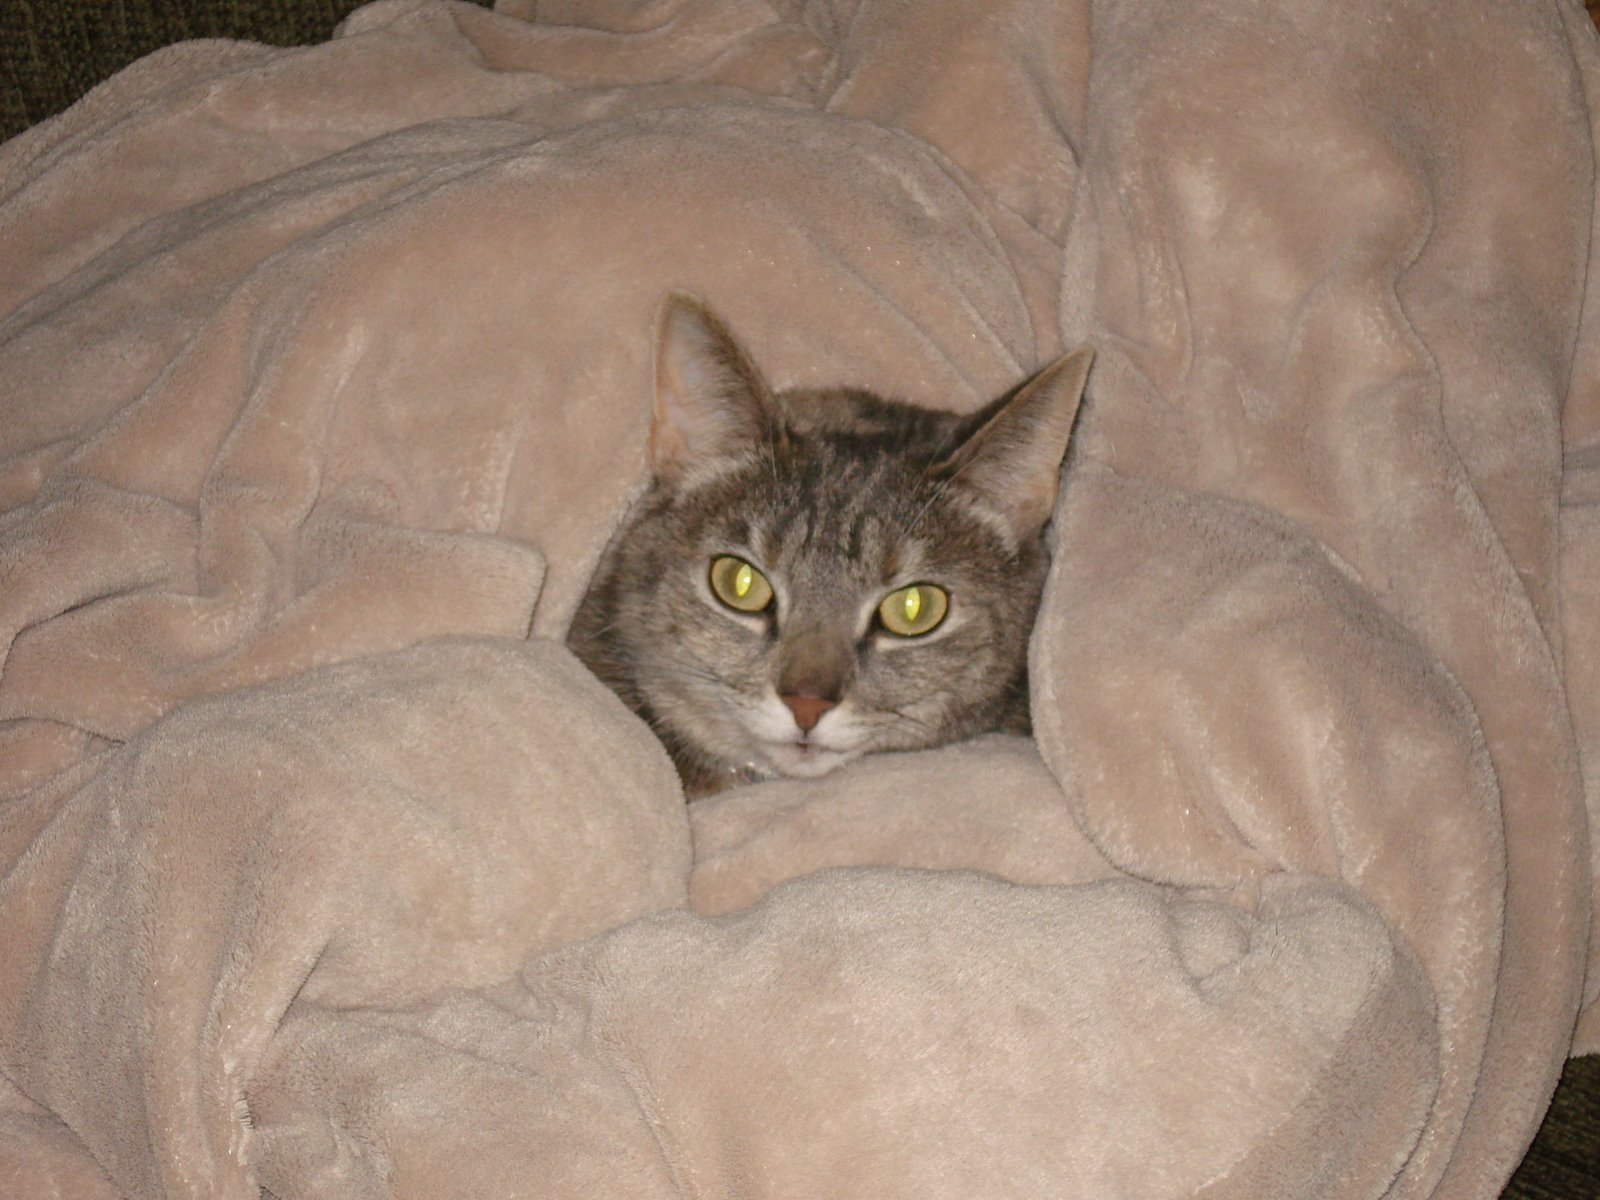 [Mia+in+blanket]